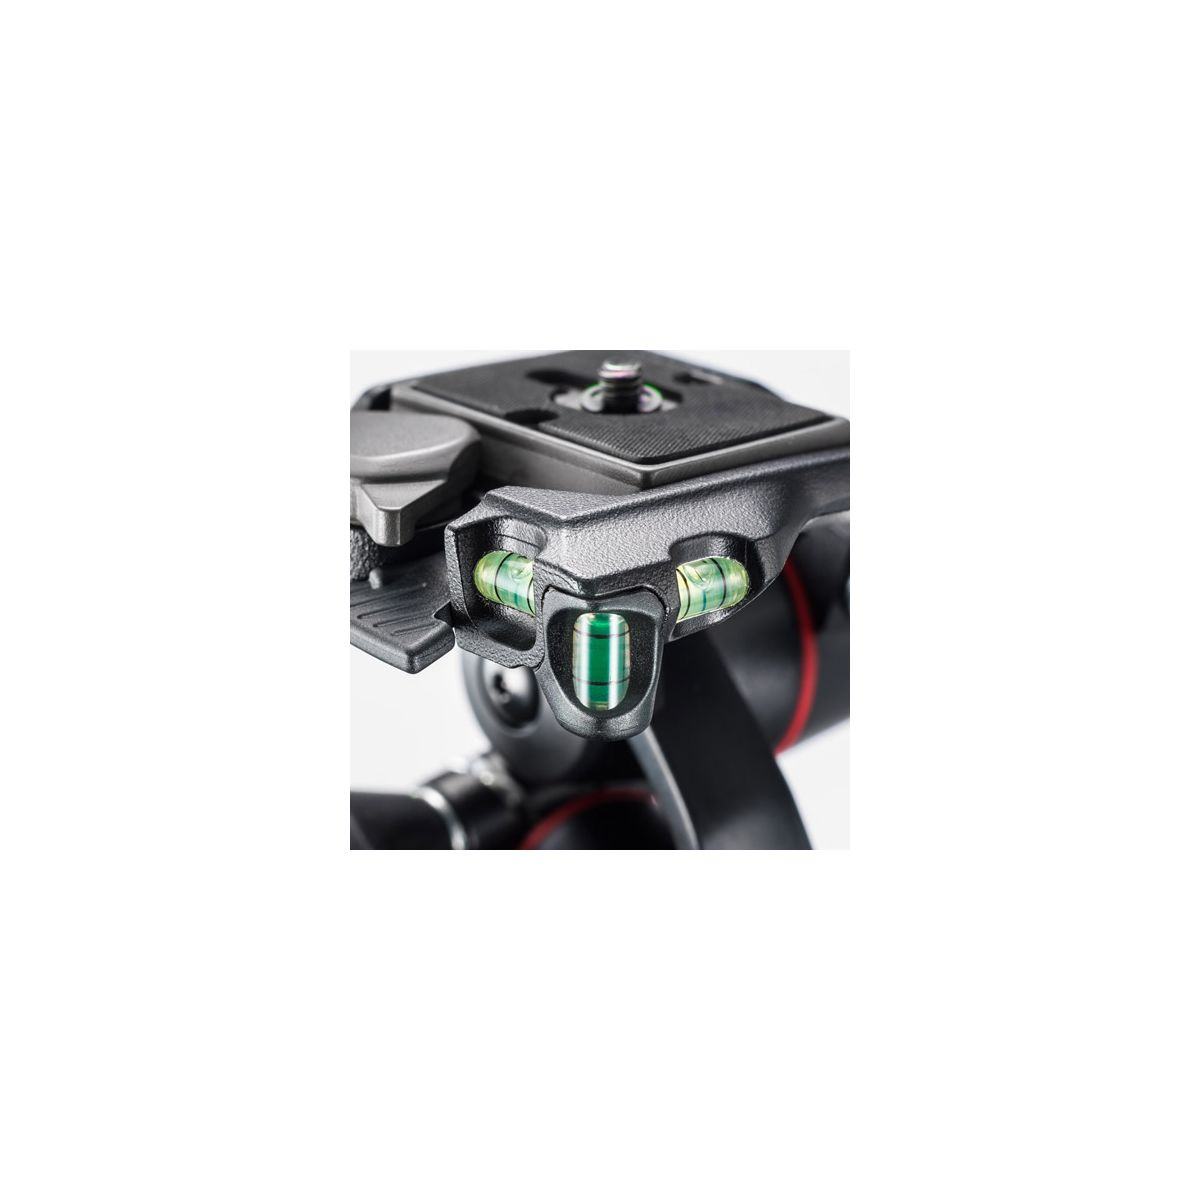 Tr�pied manfrotto mk190xpro4-3w + rotule 3d - 7% de remise imm�diate avec le code : school7 (photo)